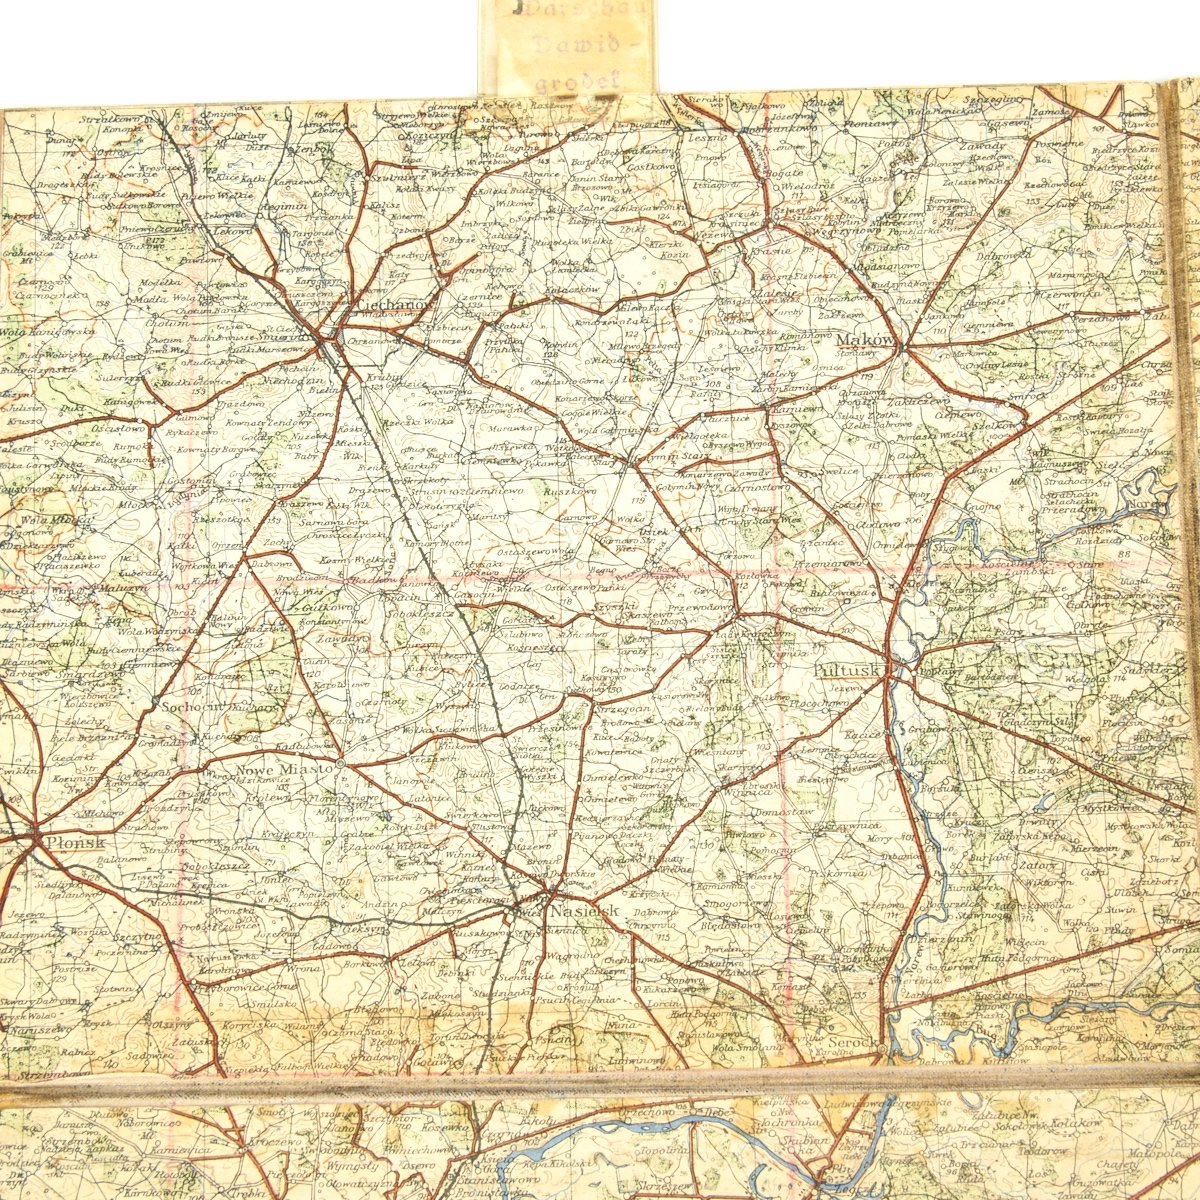 Map Of Germany Wwii.Original German Wwii Luftwaffe Navigator Maps Of Poland And Germany